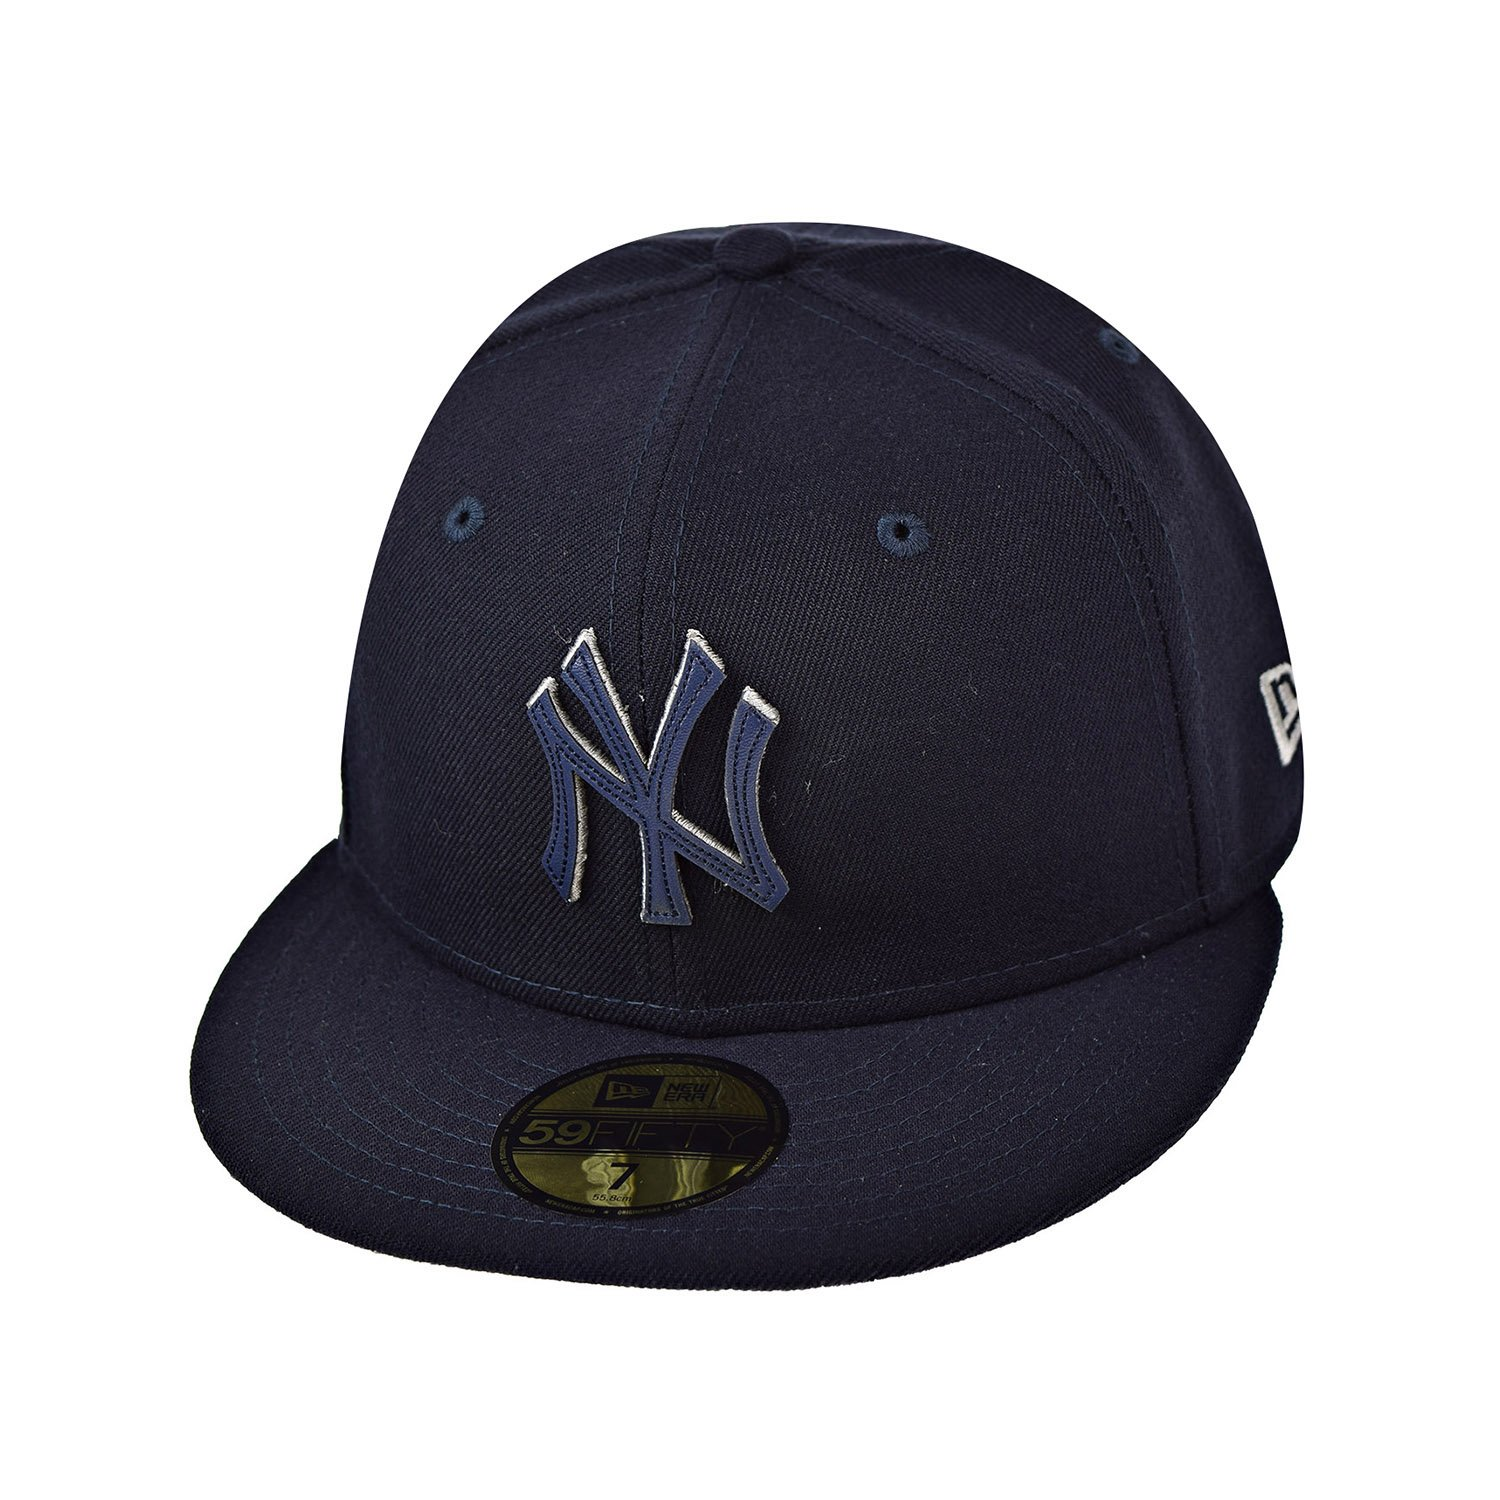 a27613de9 ... coupon code new era new york yankees leather pop 59fifty mens fitted hat  cap navy blue ...